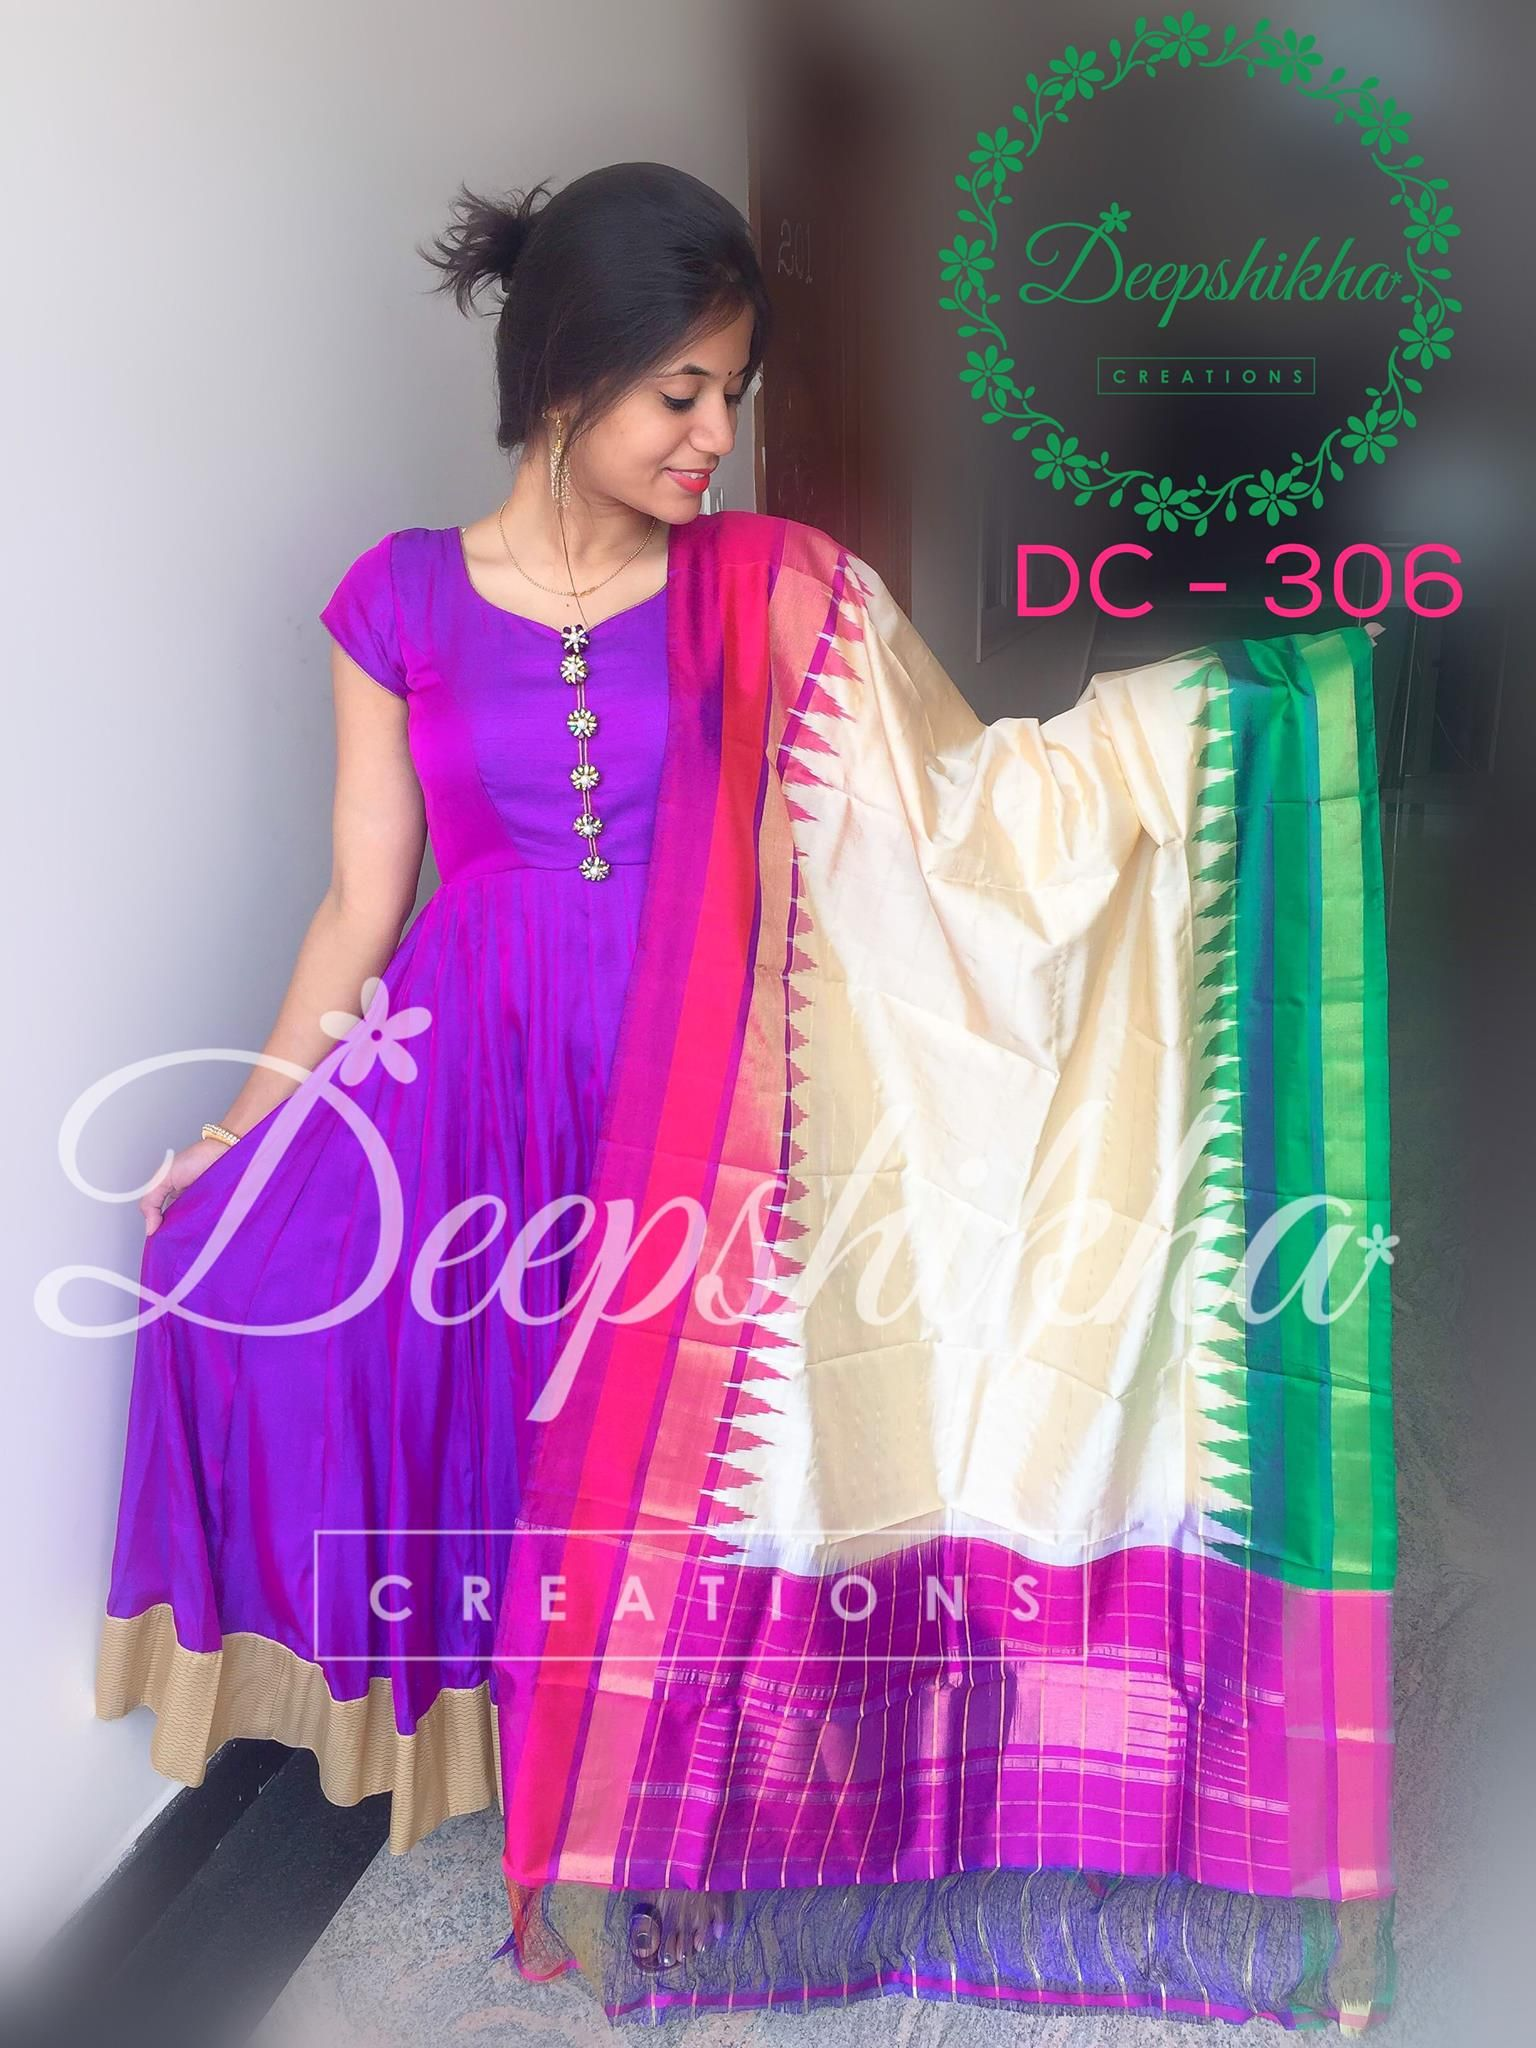 DC - 306For queries kindly inbox orEmail - deepshikhacreations@gmail ...